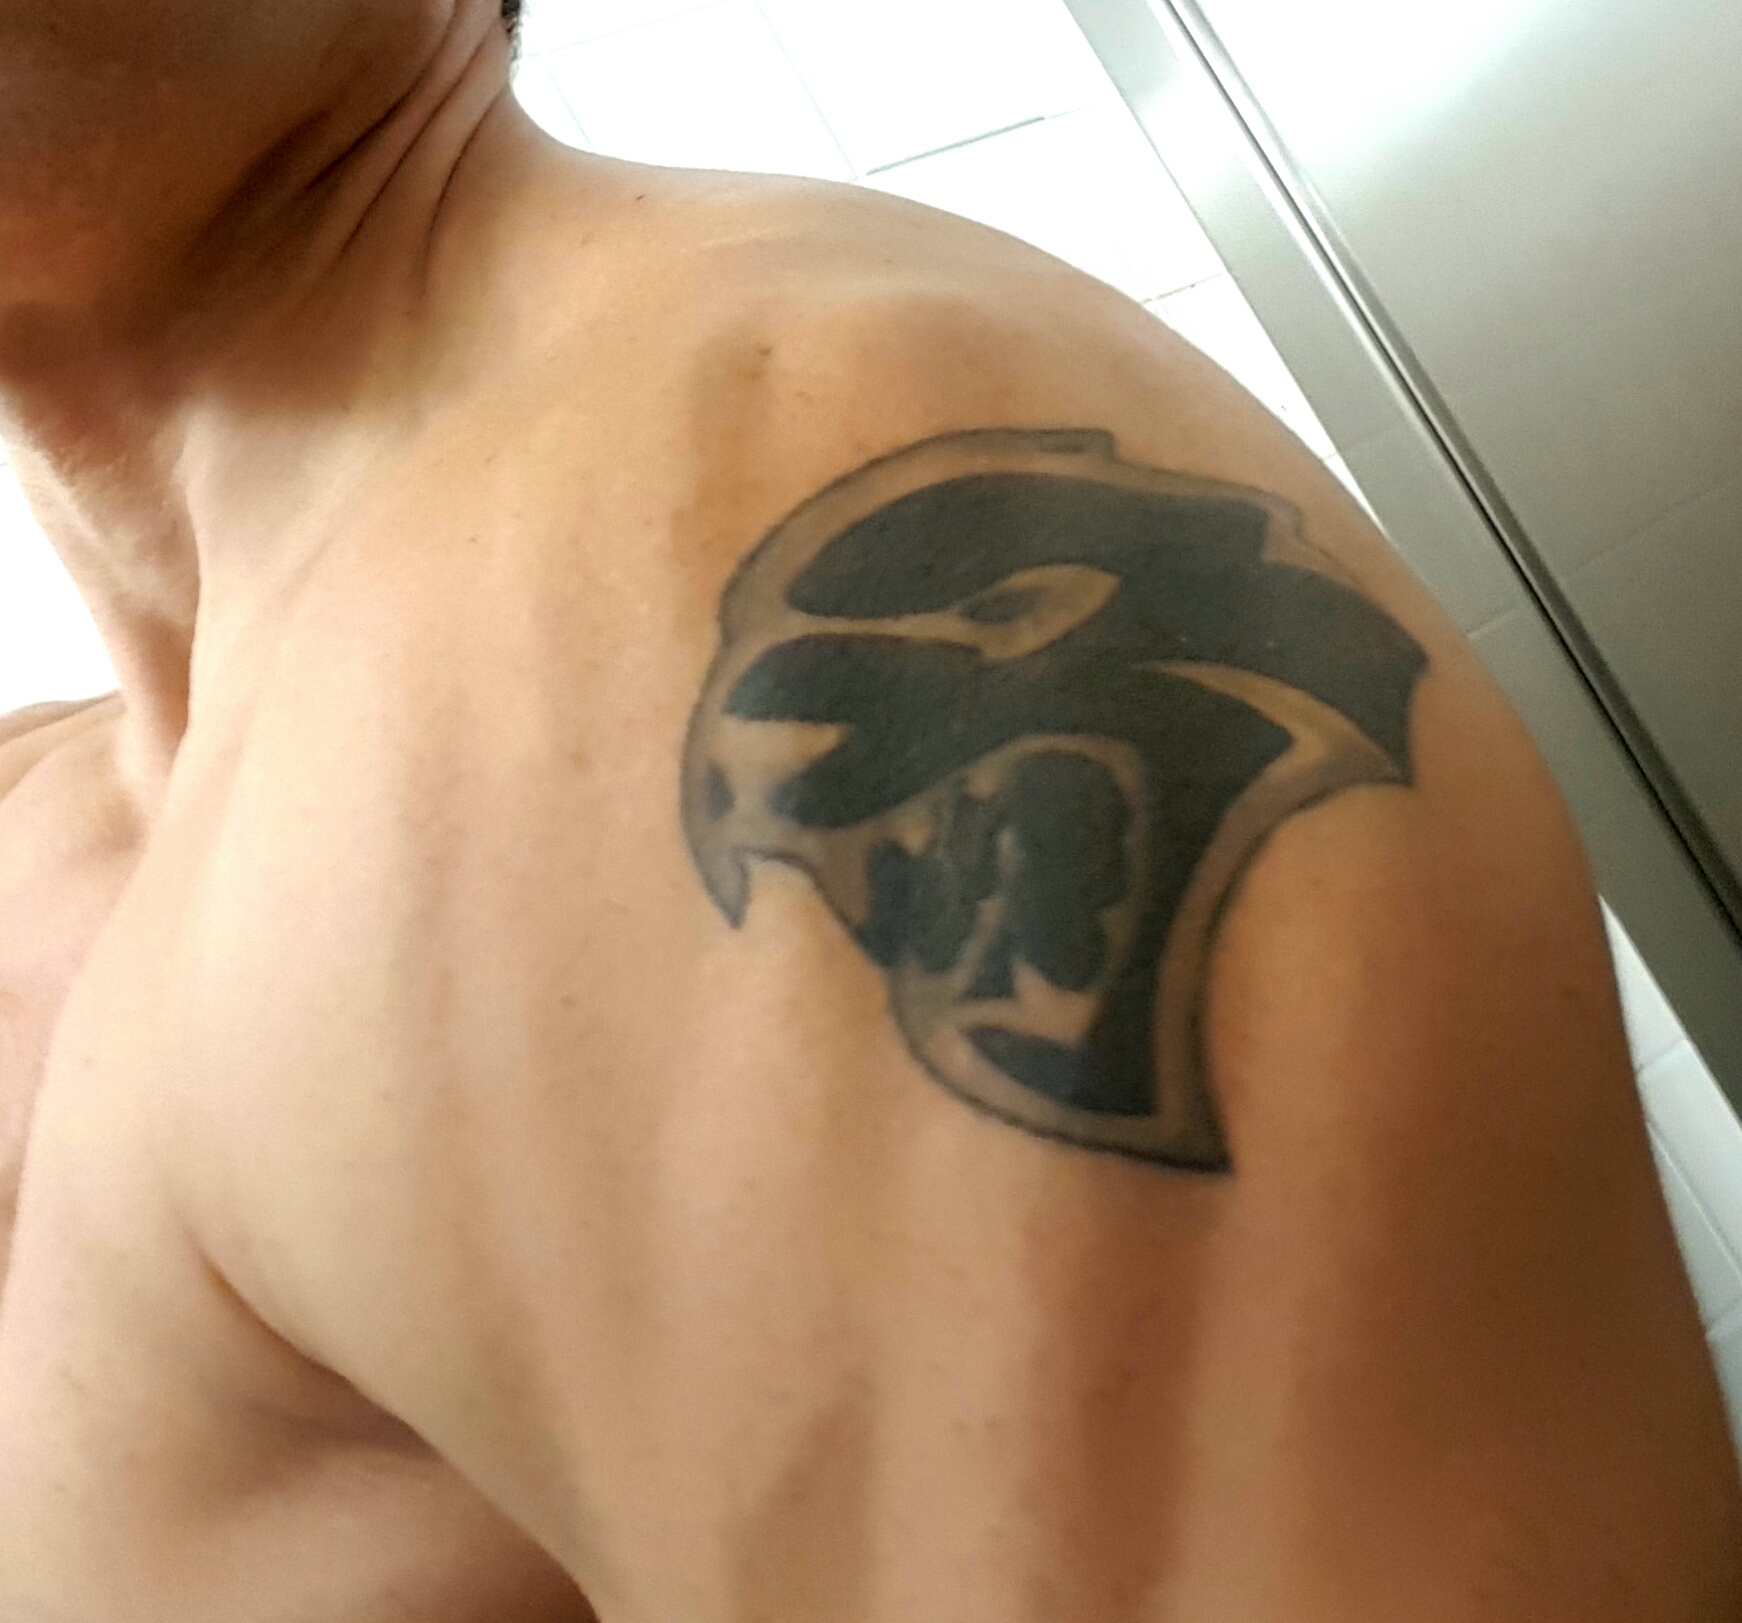 Charger Srt Hellcat >> Hellcat tattoo looks like I'm stuck with the car now | Page 2 | SRT Hellcat Forum